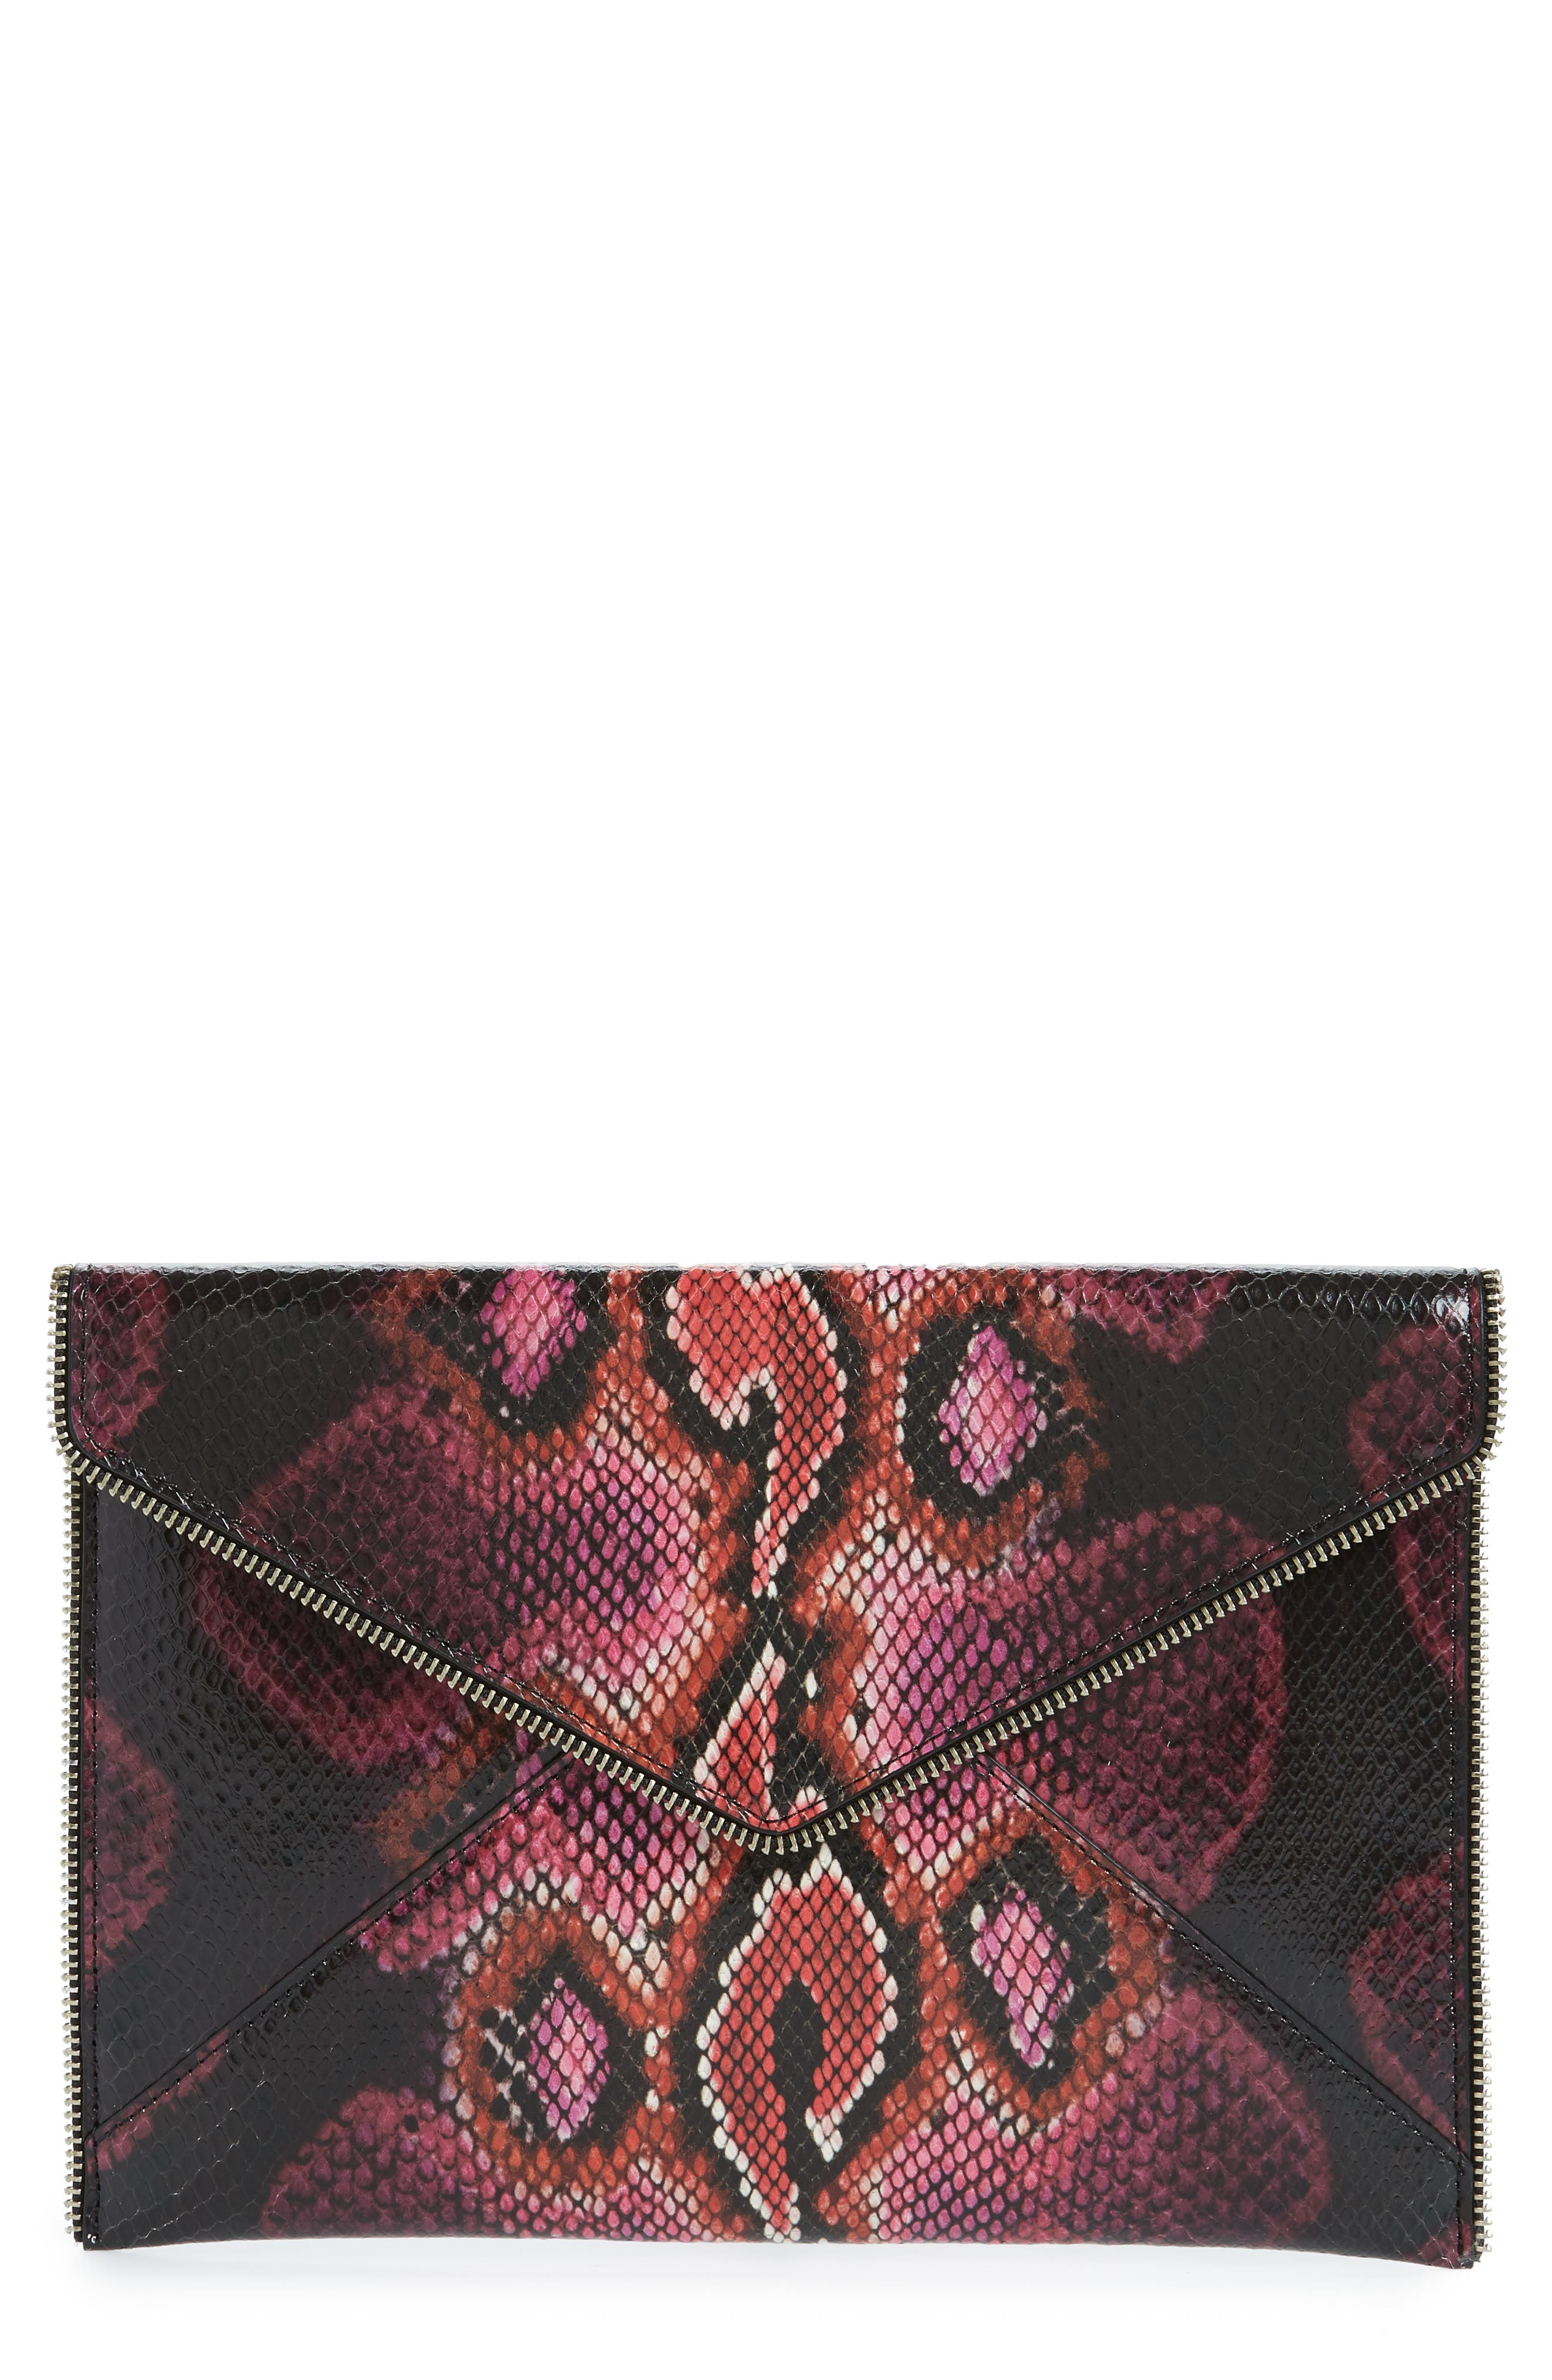 REBECCA MINKOFF Leo Snake Embossed Leather Clutch, Main, color, 650